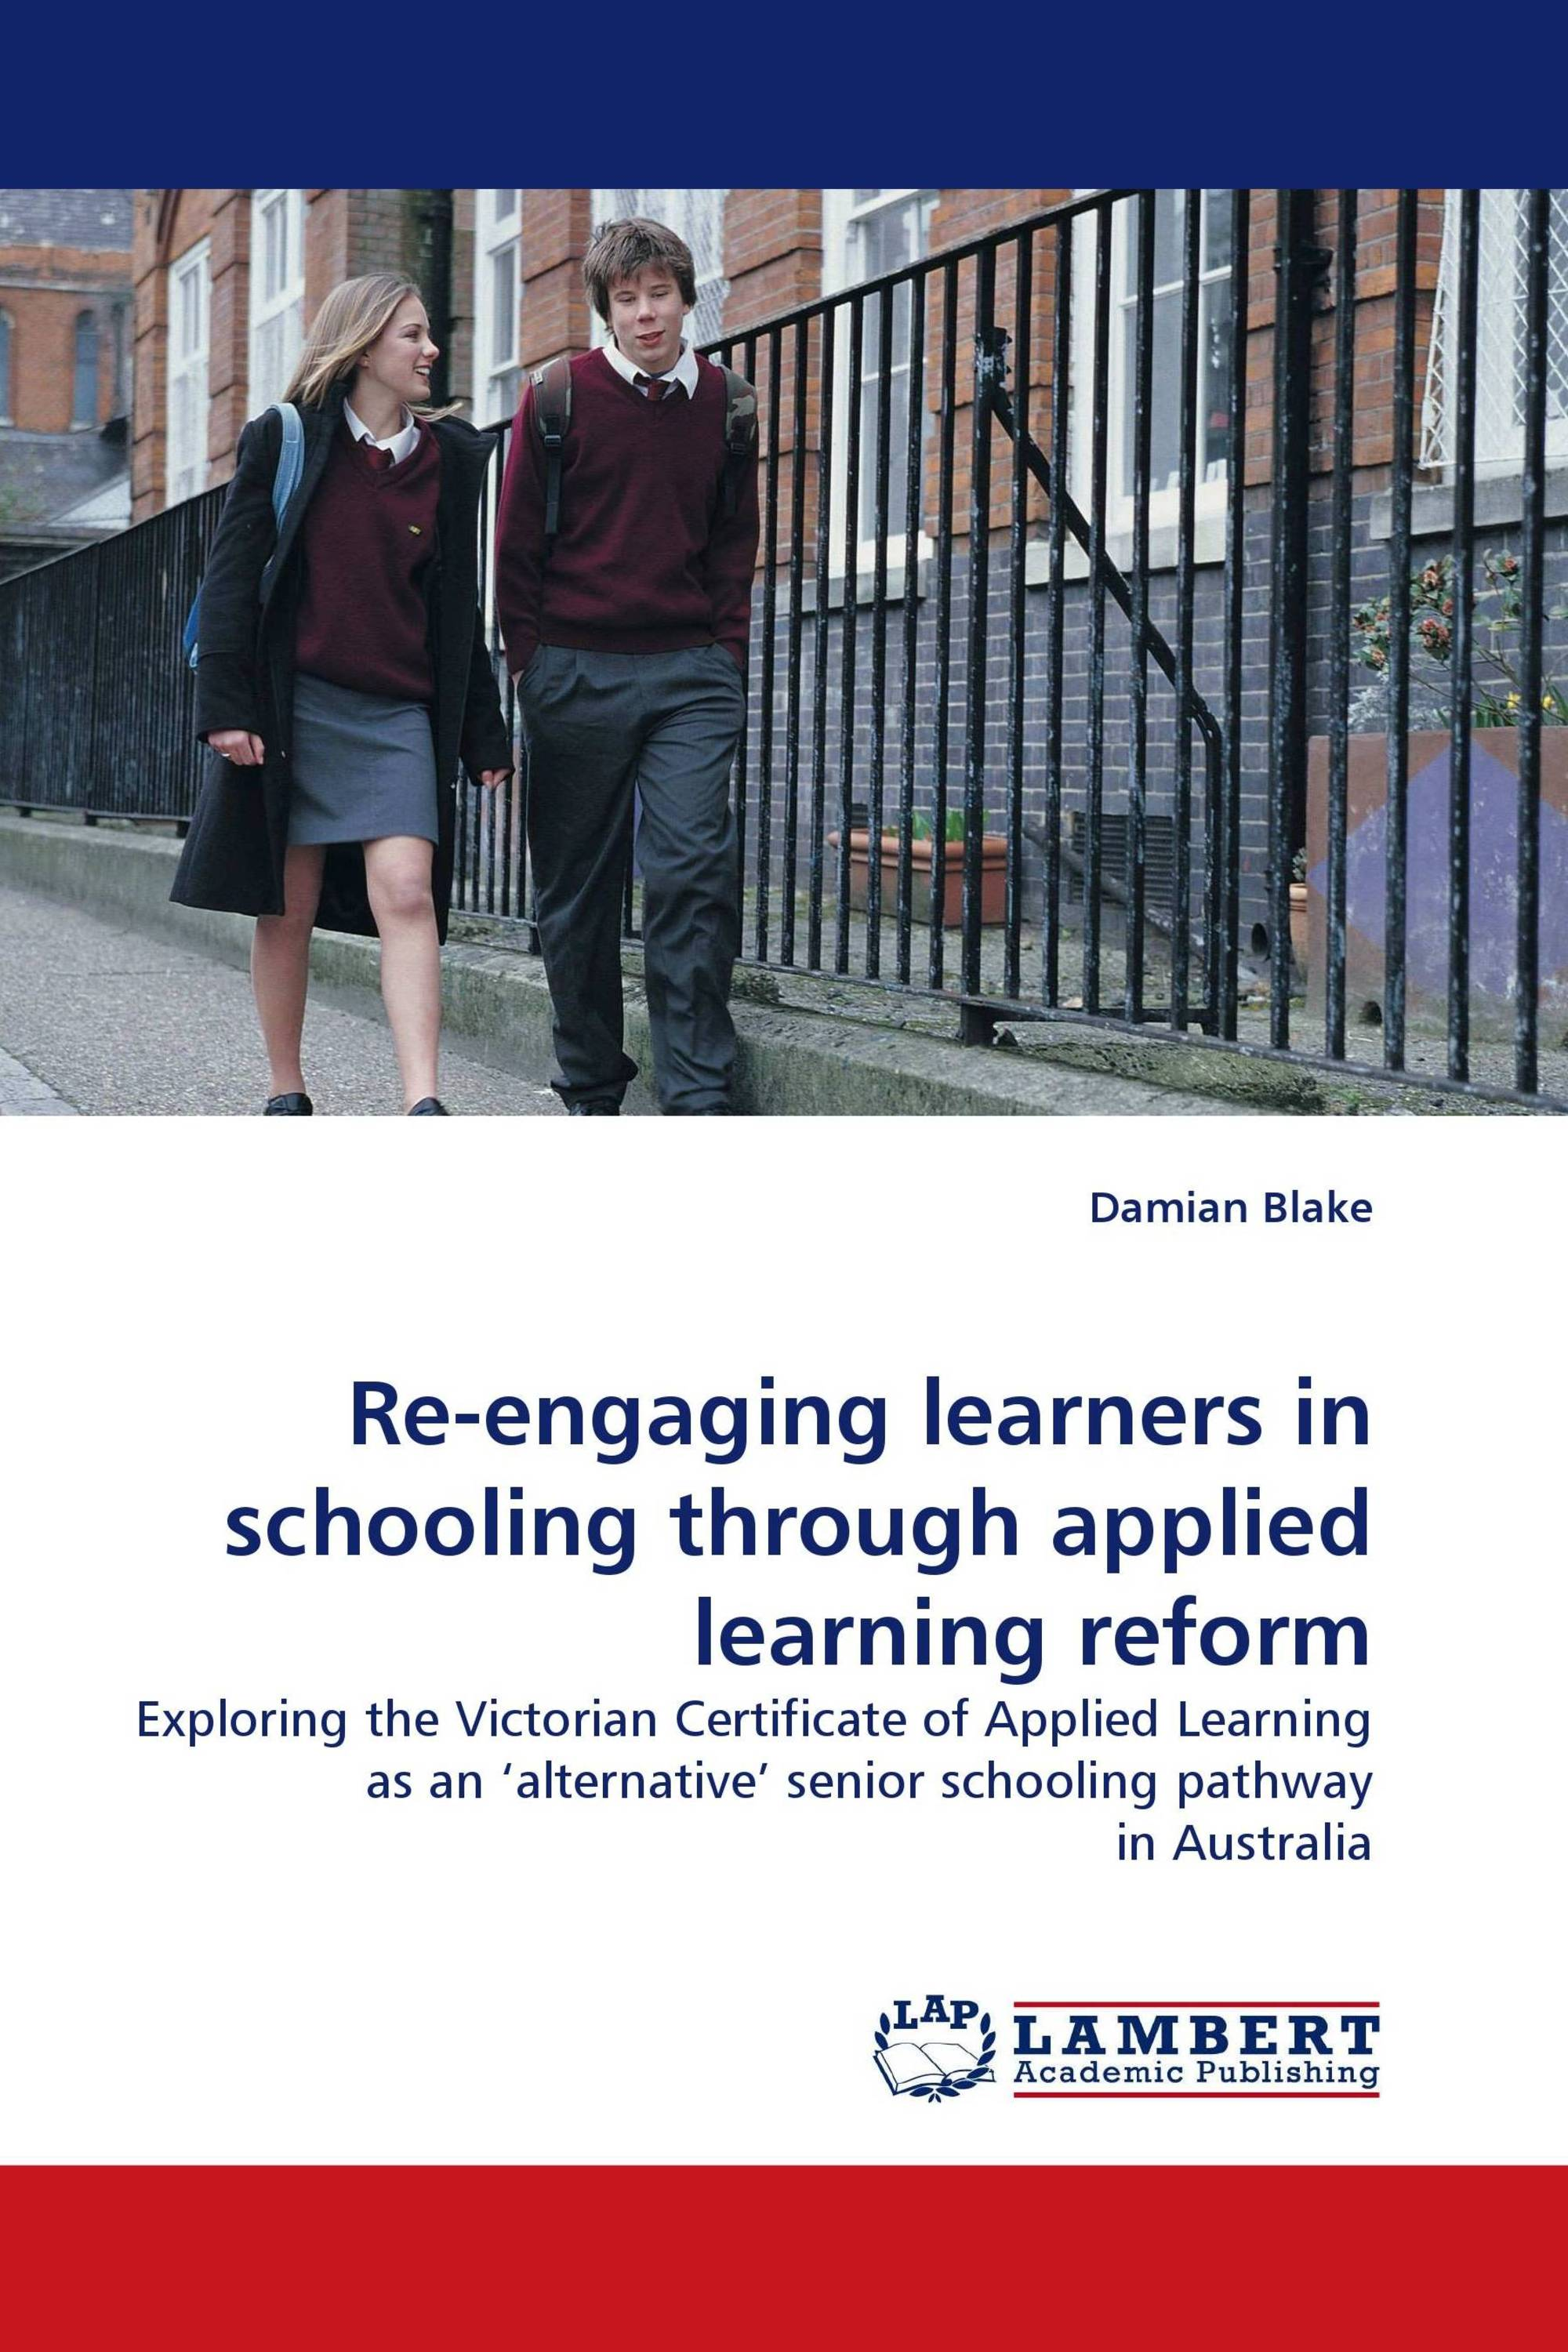 Re-engaging learners in schooling through applied learning reform